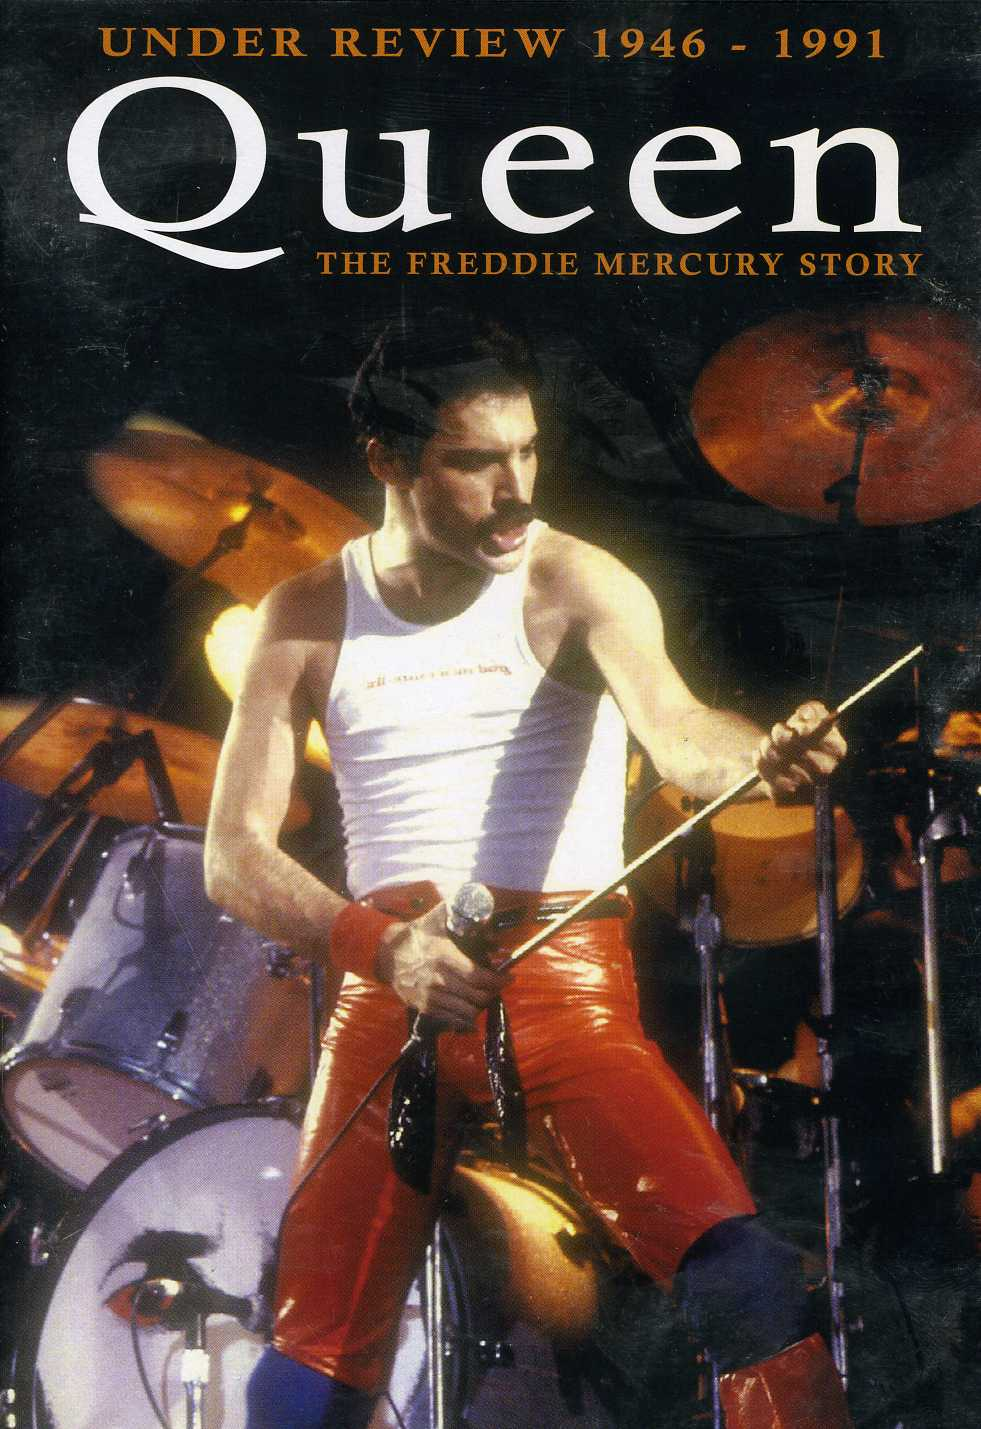 Queen- Under Review 1946-1991: The Freddie Mercury Story (DVD)